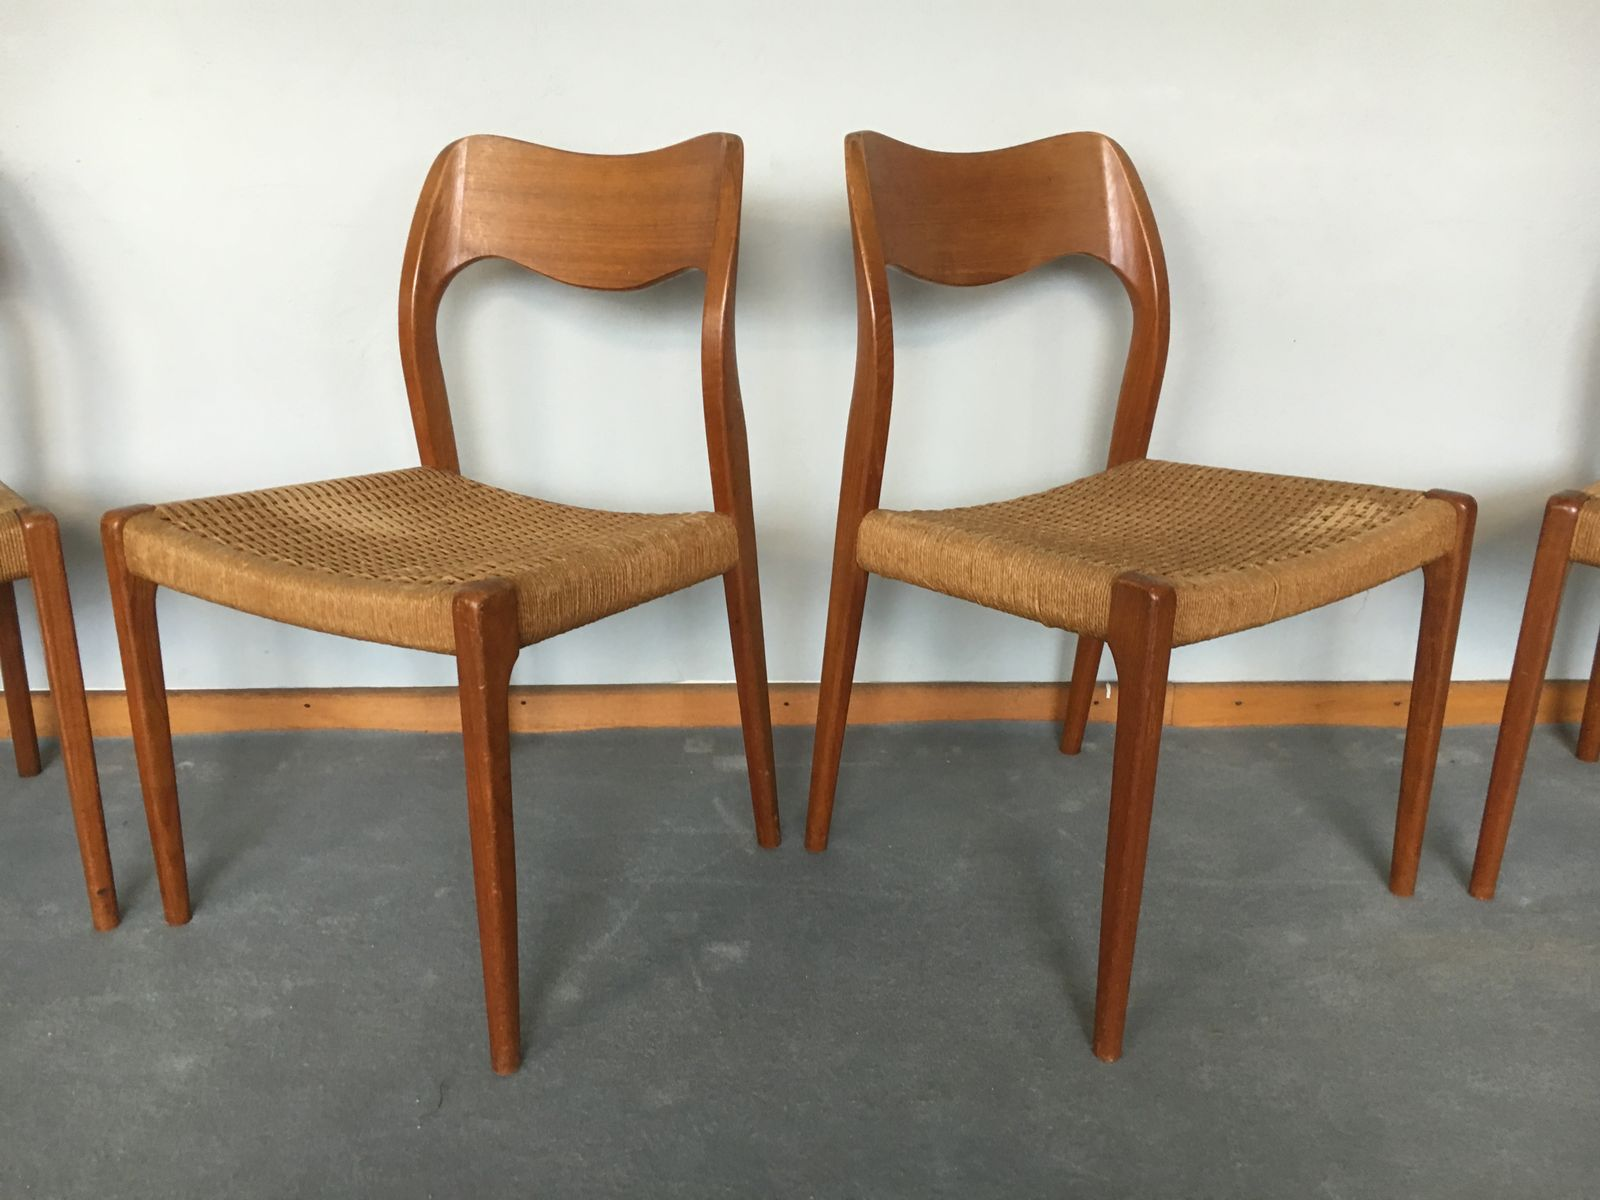 Awesome Model 71 Dining Chairs By Niels O Møller For J L 1960s